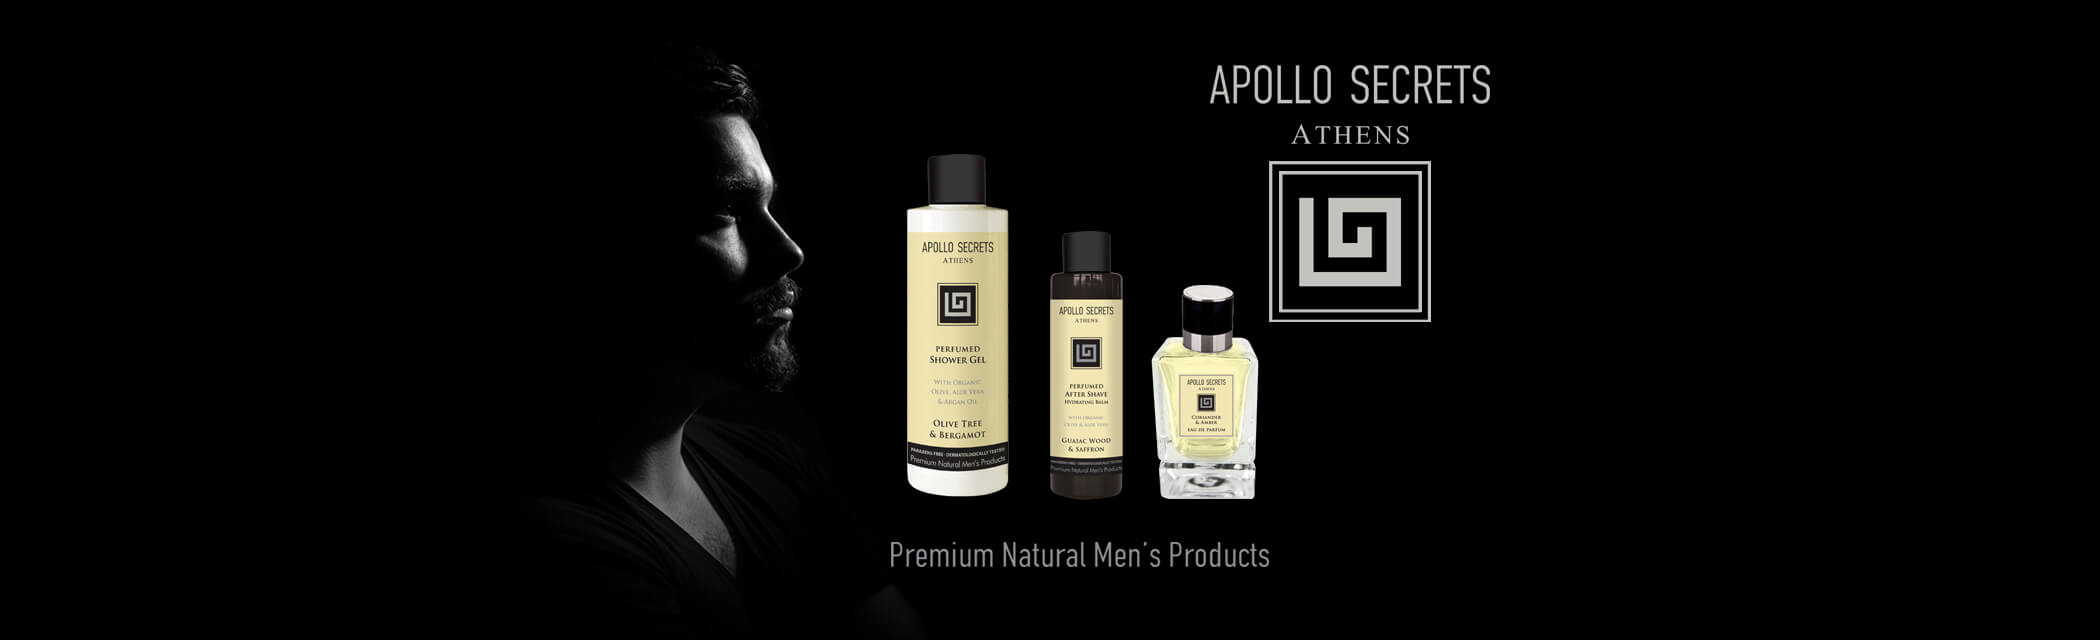 Appolo Secrets Premium Natural Men 's Products